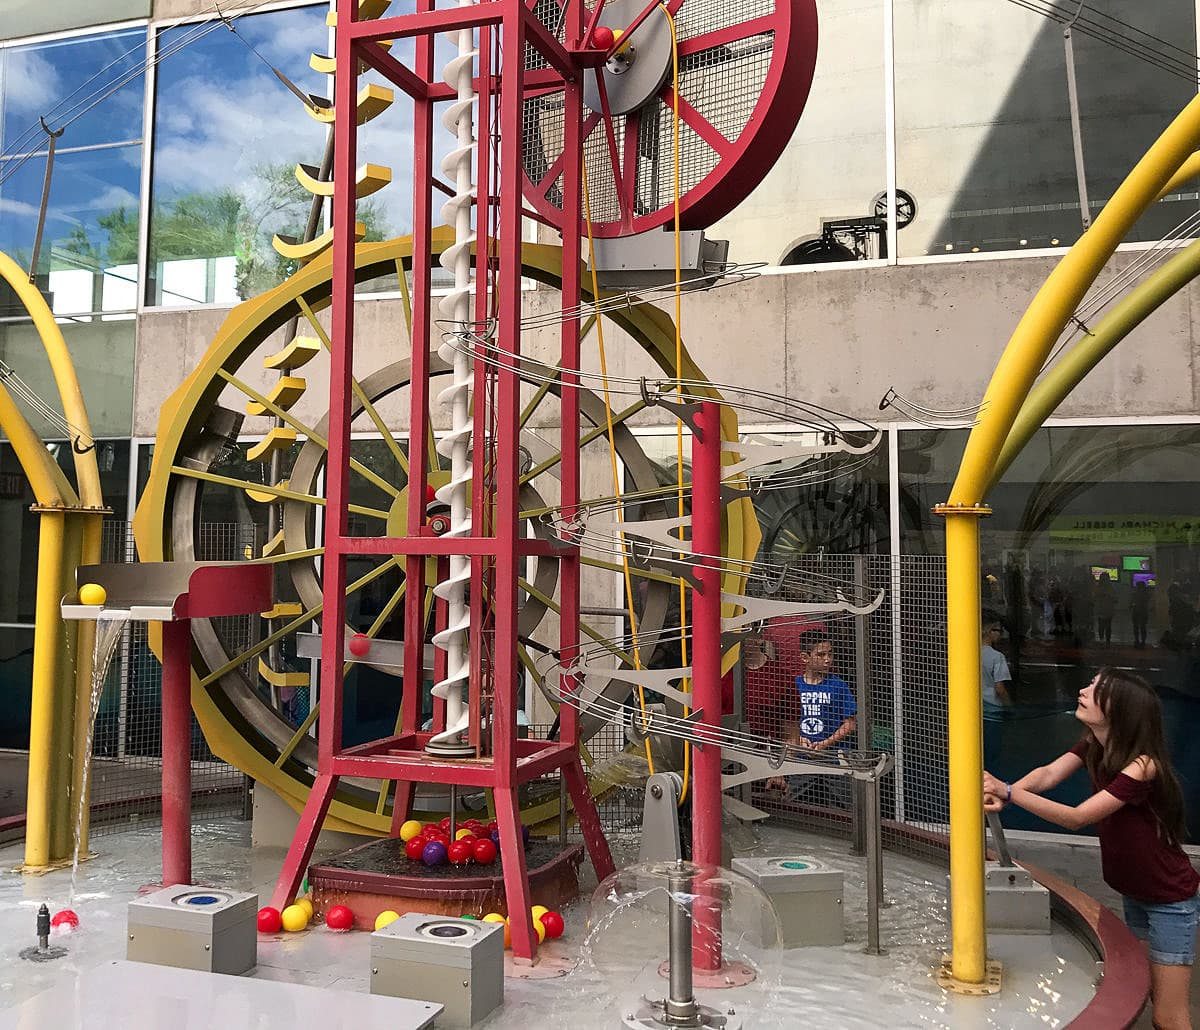 An outdoor exhibit at the Arizona Science Center in Phoenix with kids